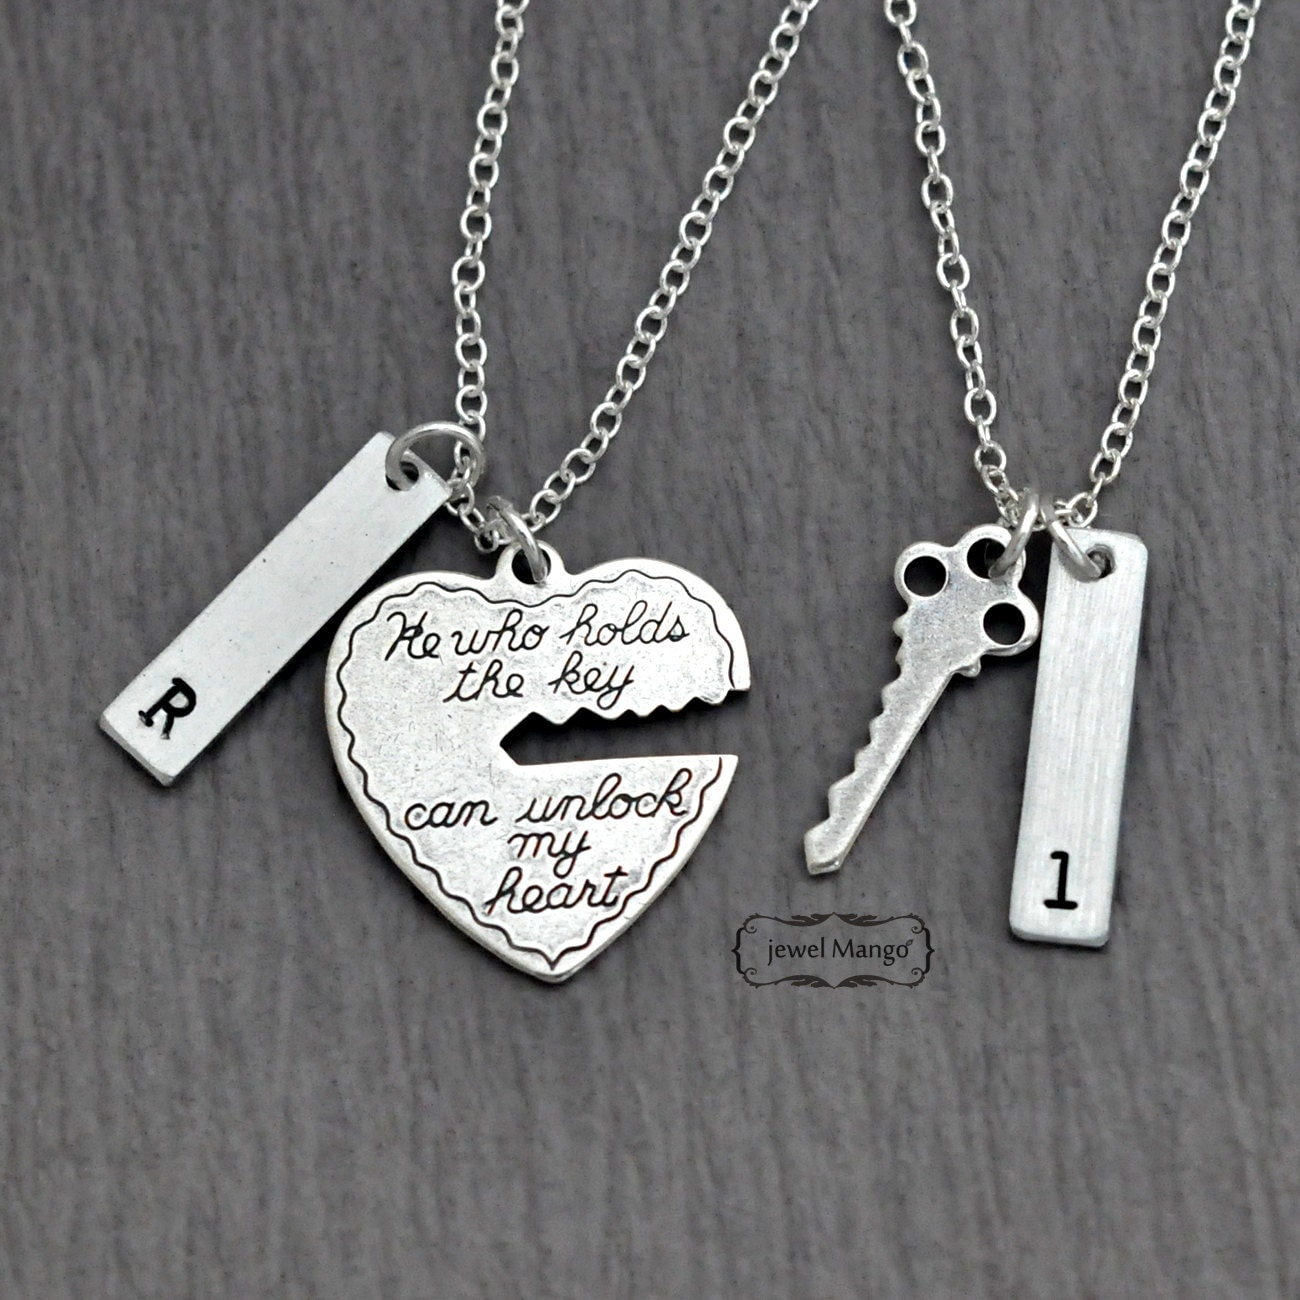 heart necklace for couples - photo #42